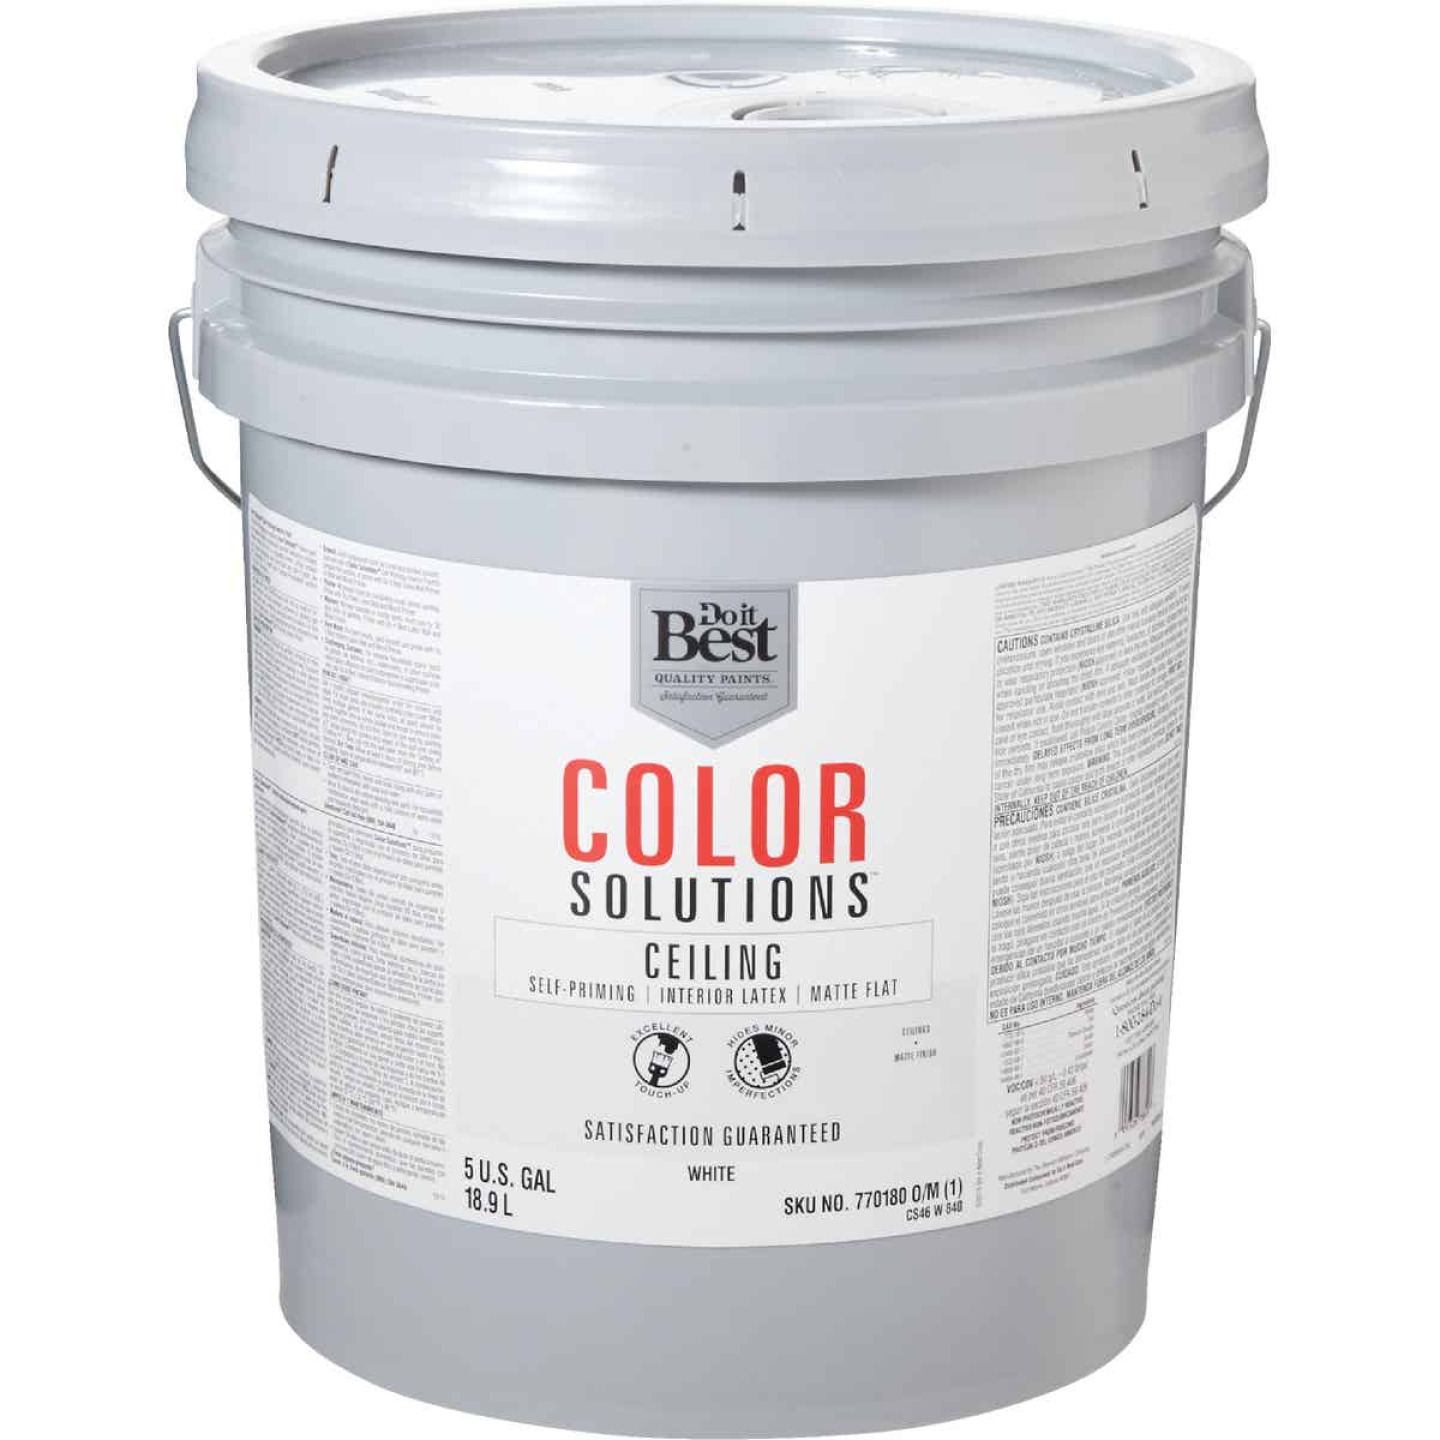 Do it Best Color Solutions Latex Self-Priming Flat Ceiling Paint, White, 5 Gal. Image 1